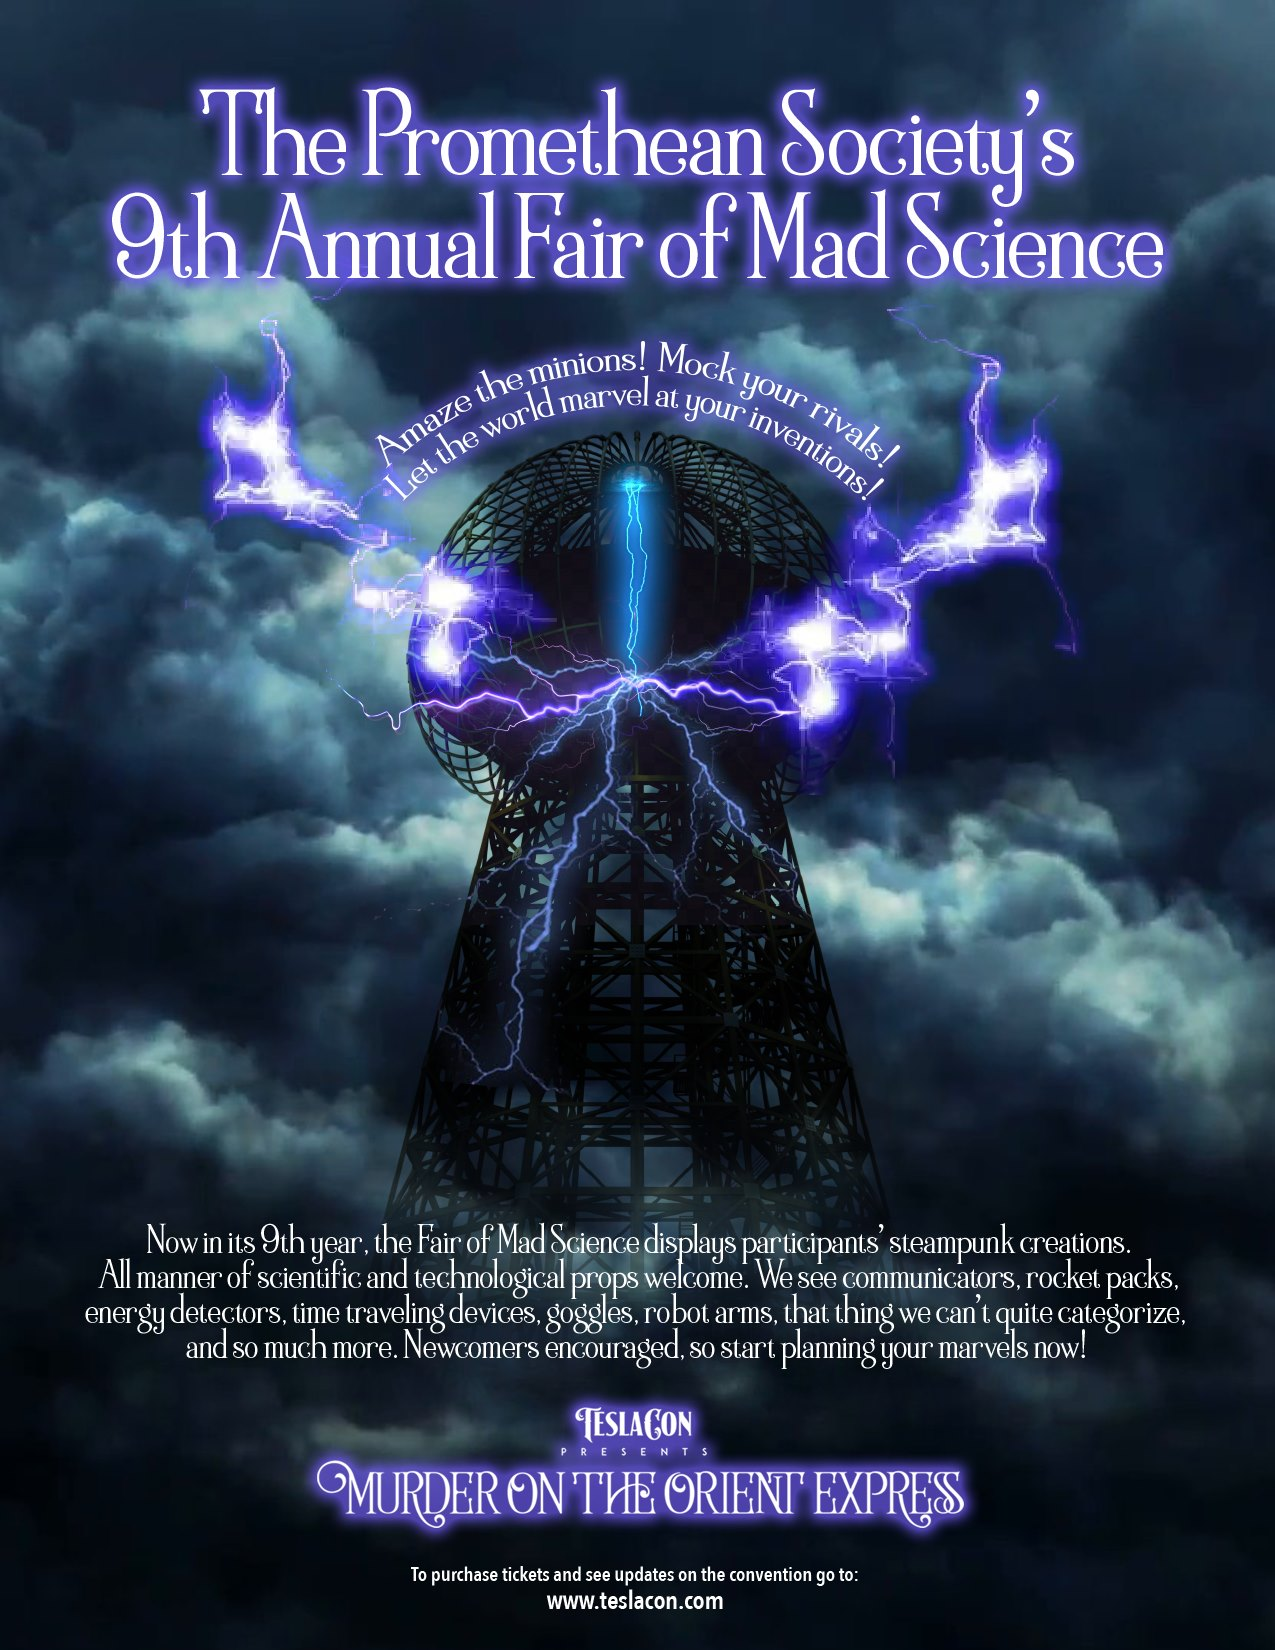 The Annual Fair of Mad Science